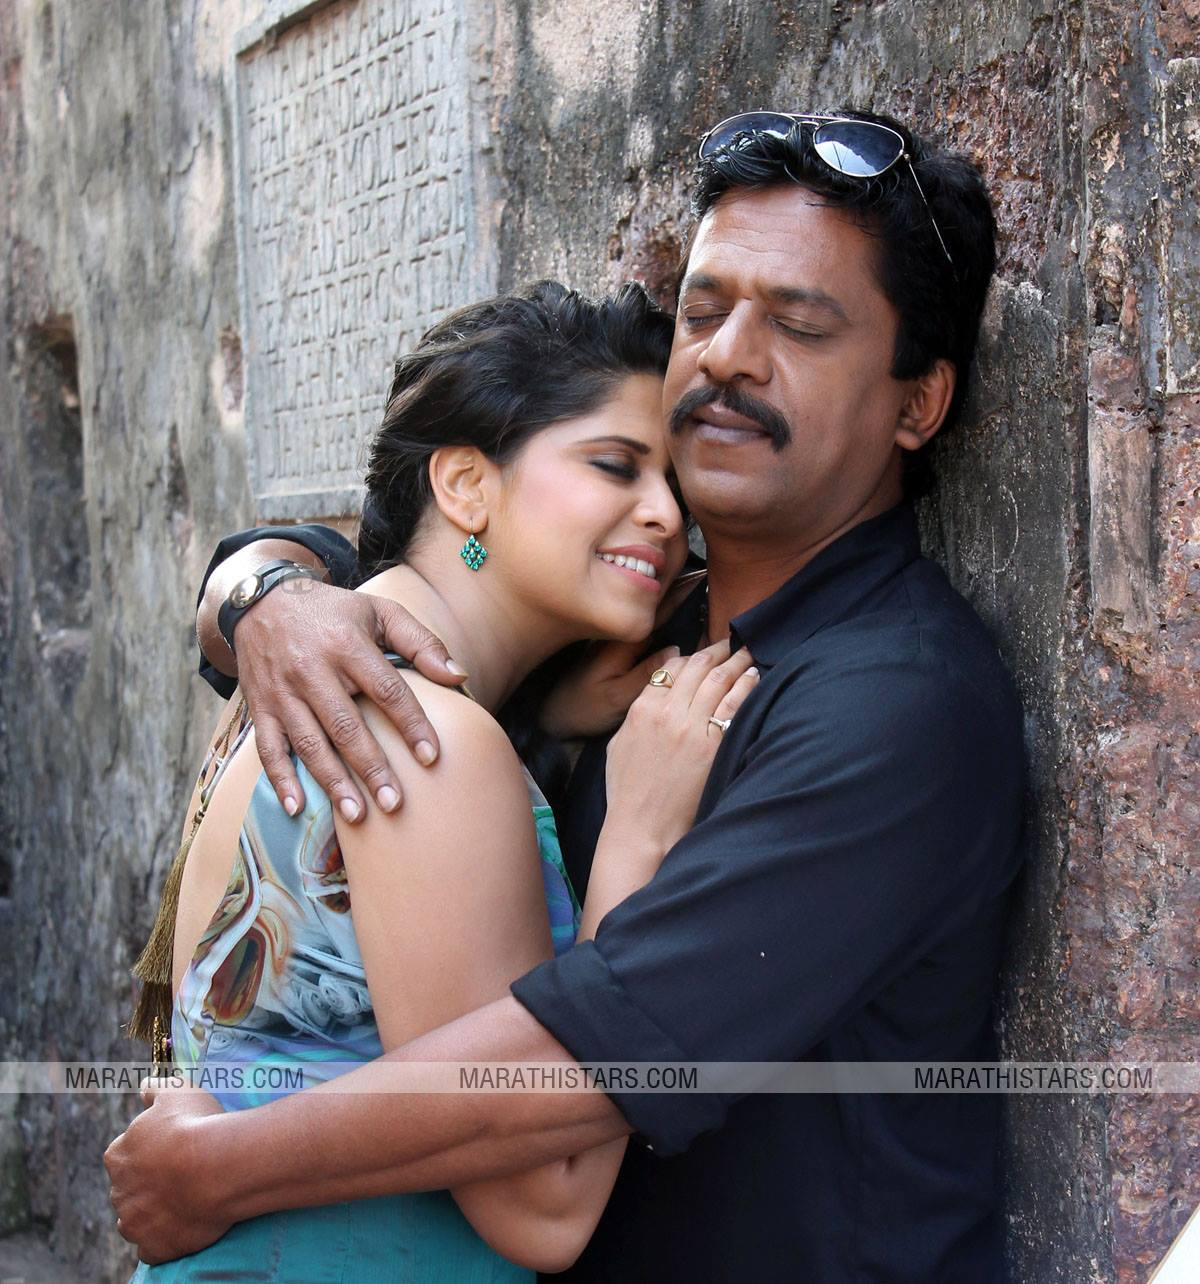 upendra limaye heightupendra limaye wife, upendra limaye age, upendra limaye movies, upendra limaye death, upendra limaye songs, upendra limaye images, upendra limaye jogwa, upendra limaye height, upendra limaye caste, upendra limaye marathi movies, upendra limaye and mukta barve, upendra limaye marathi movies list, upendra limaye movies list, upendra limaye biography, upendra limaye photos, upendra limaye in kokanastha, upendra limaye facebook, upendra limaye national award, upendra limaye upcoming movies, upendra limaye dead